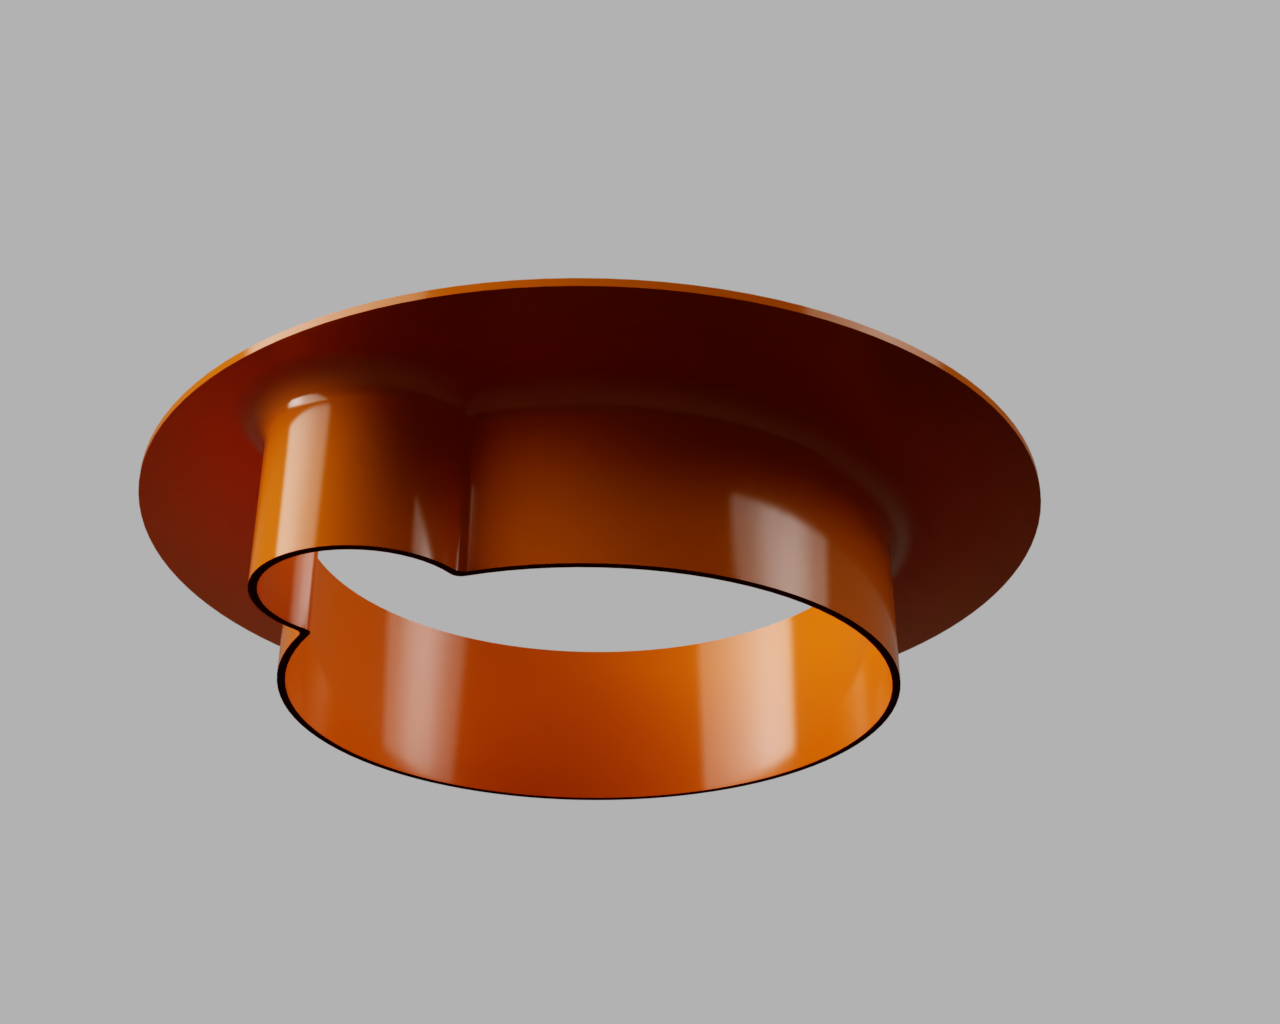 Plant_pot_collar_2019-Jul-31_03-22-29PM-000_CustomizedView10168201236.png Download free STL file Collar Flange for Self-Watering planter • Object to 3D print, 3D-Designs